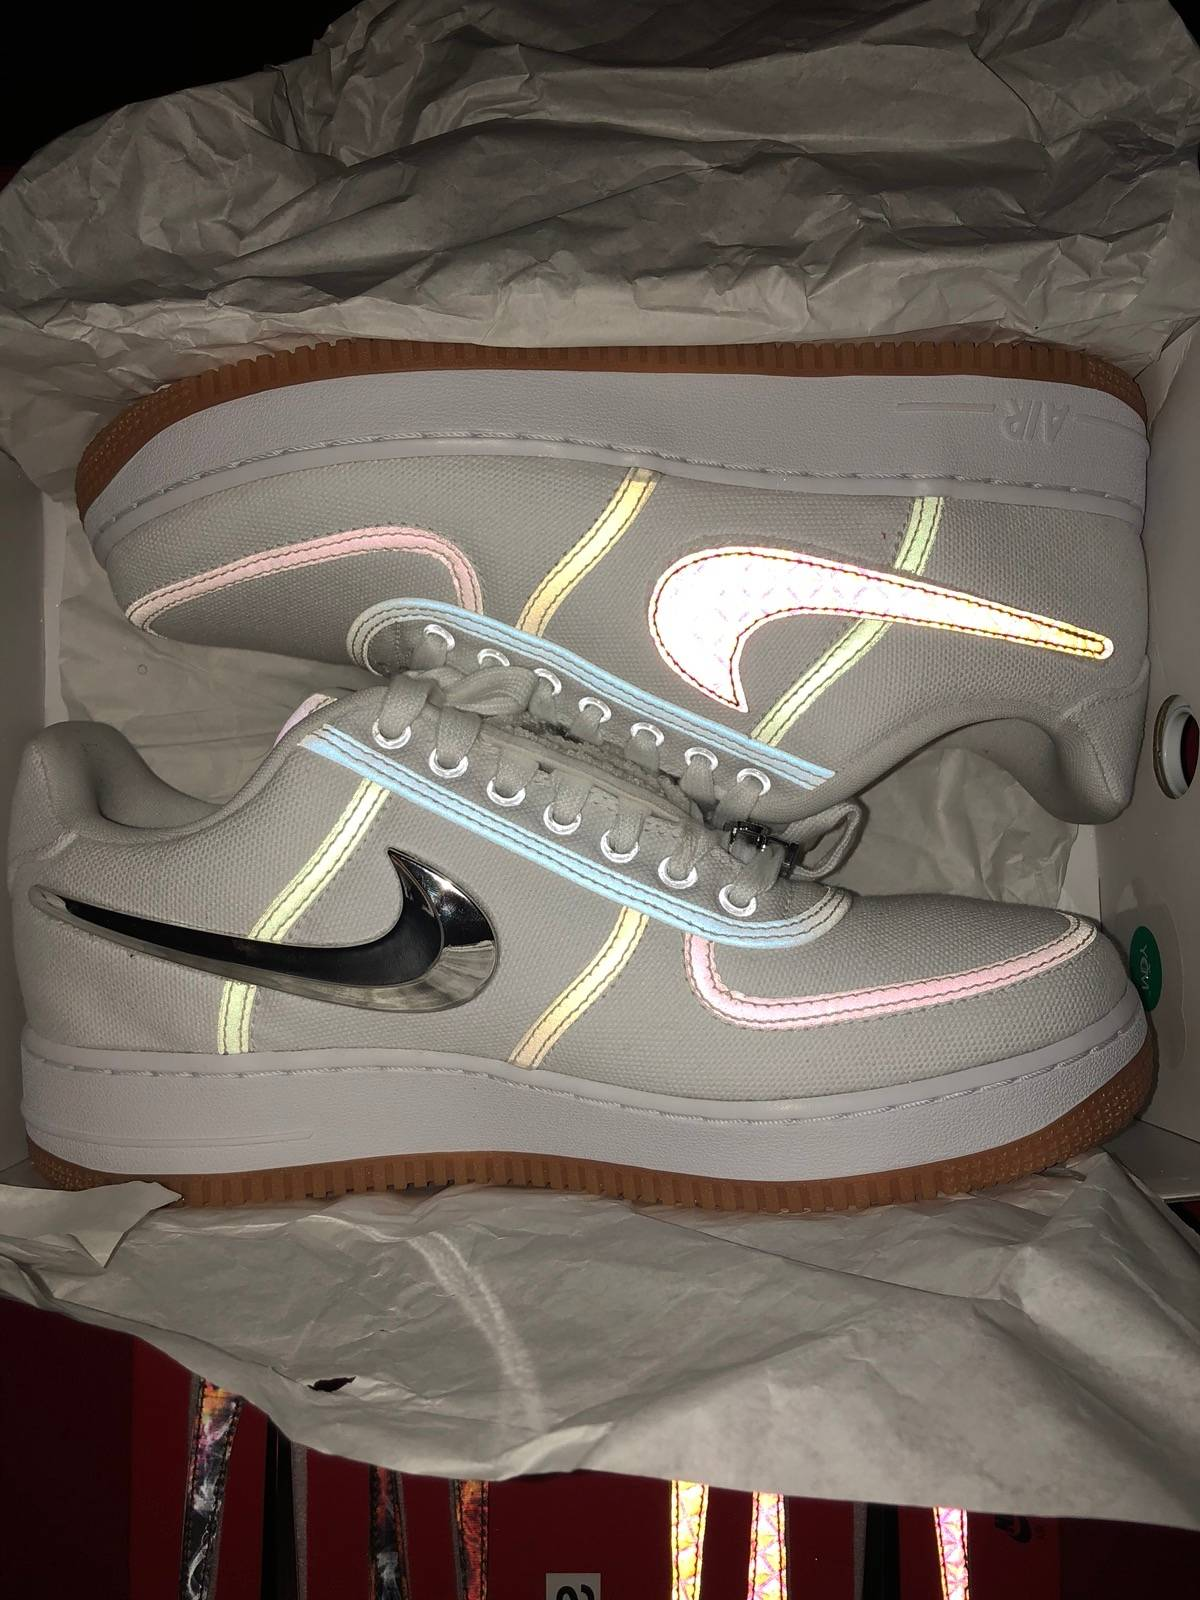 Nike Air Force 1 Low Travis Scott Size 8.5 - Low-Top Sneakers for Sale -  Grailed 1350f2209